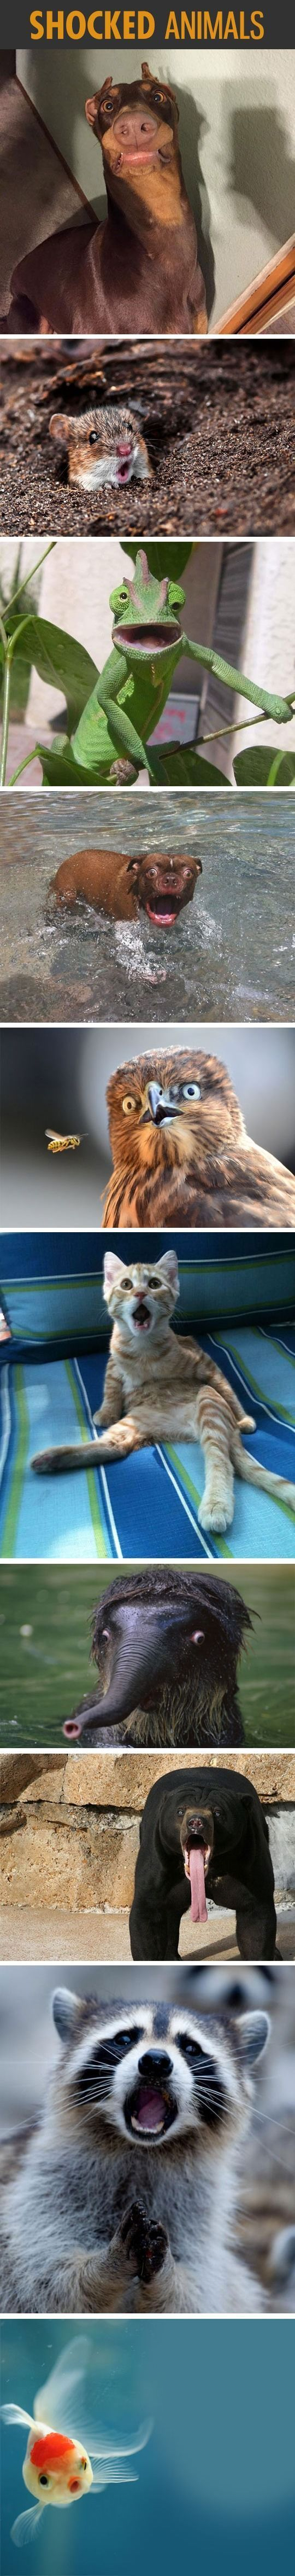 awesome Shocked Animals funny cute animals dogs cat cats adorable animal kittens pets lol kitten humor wild animals funny animals